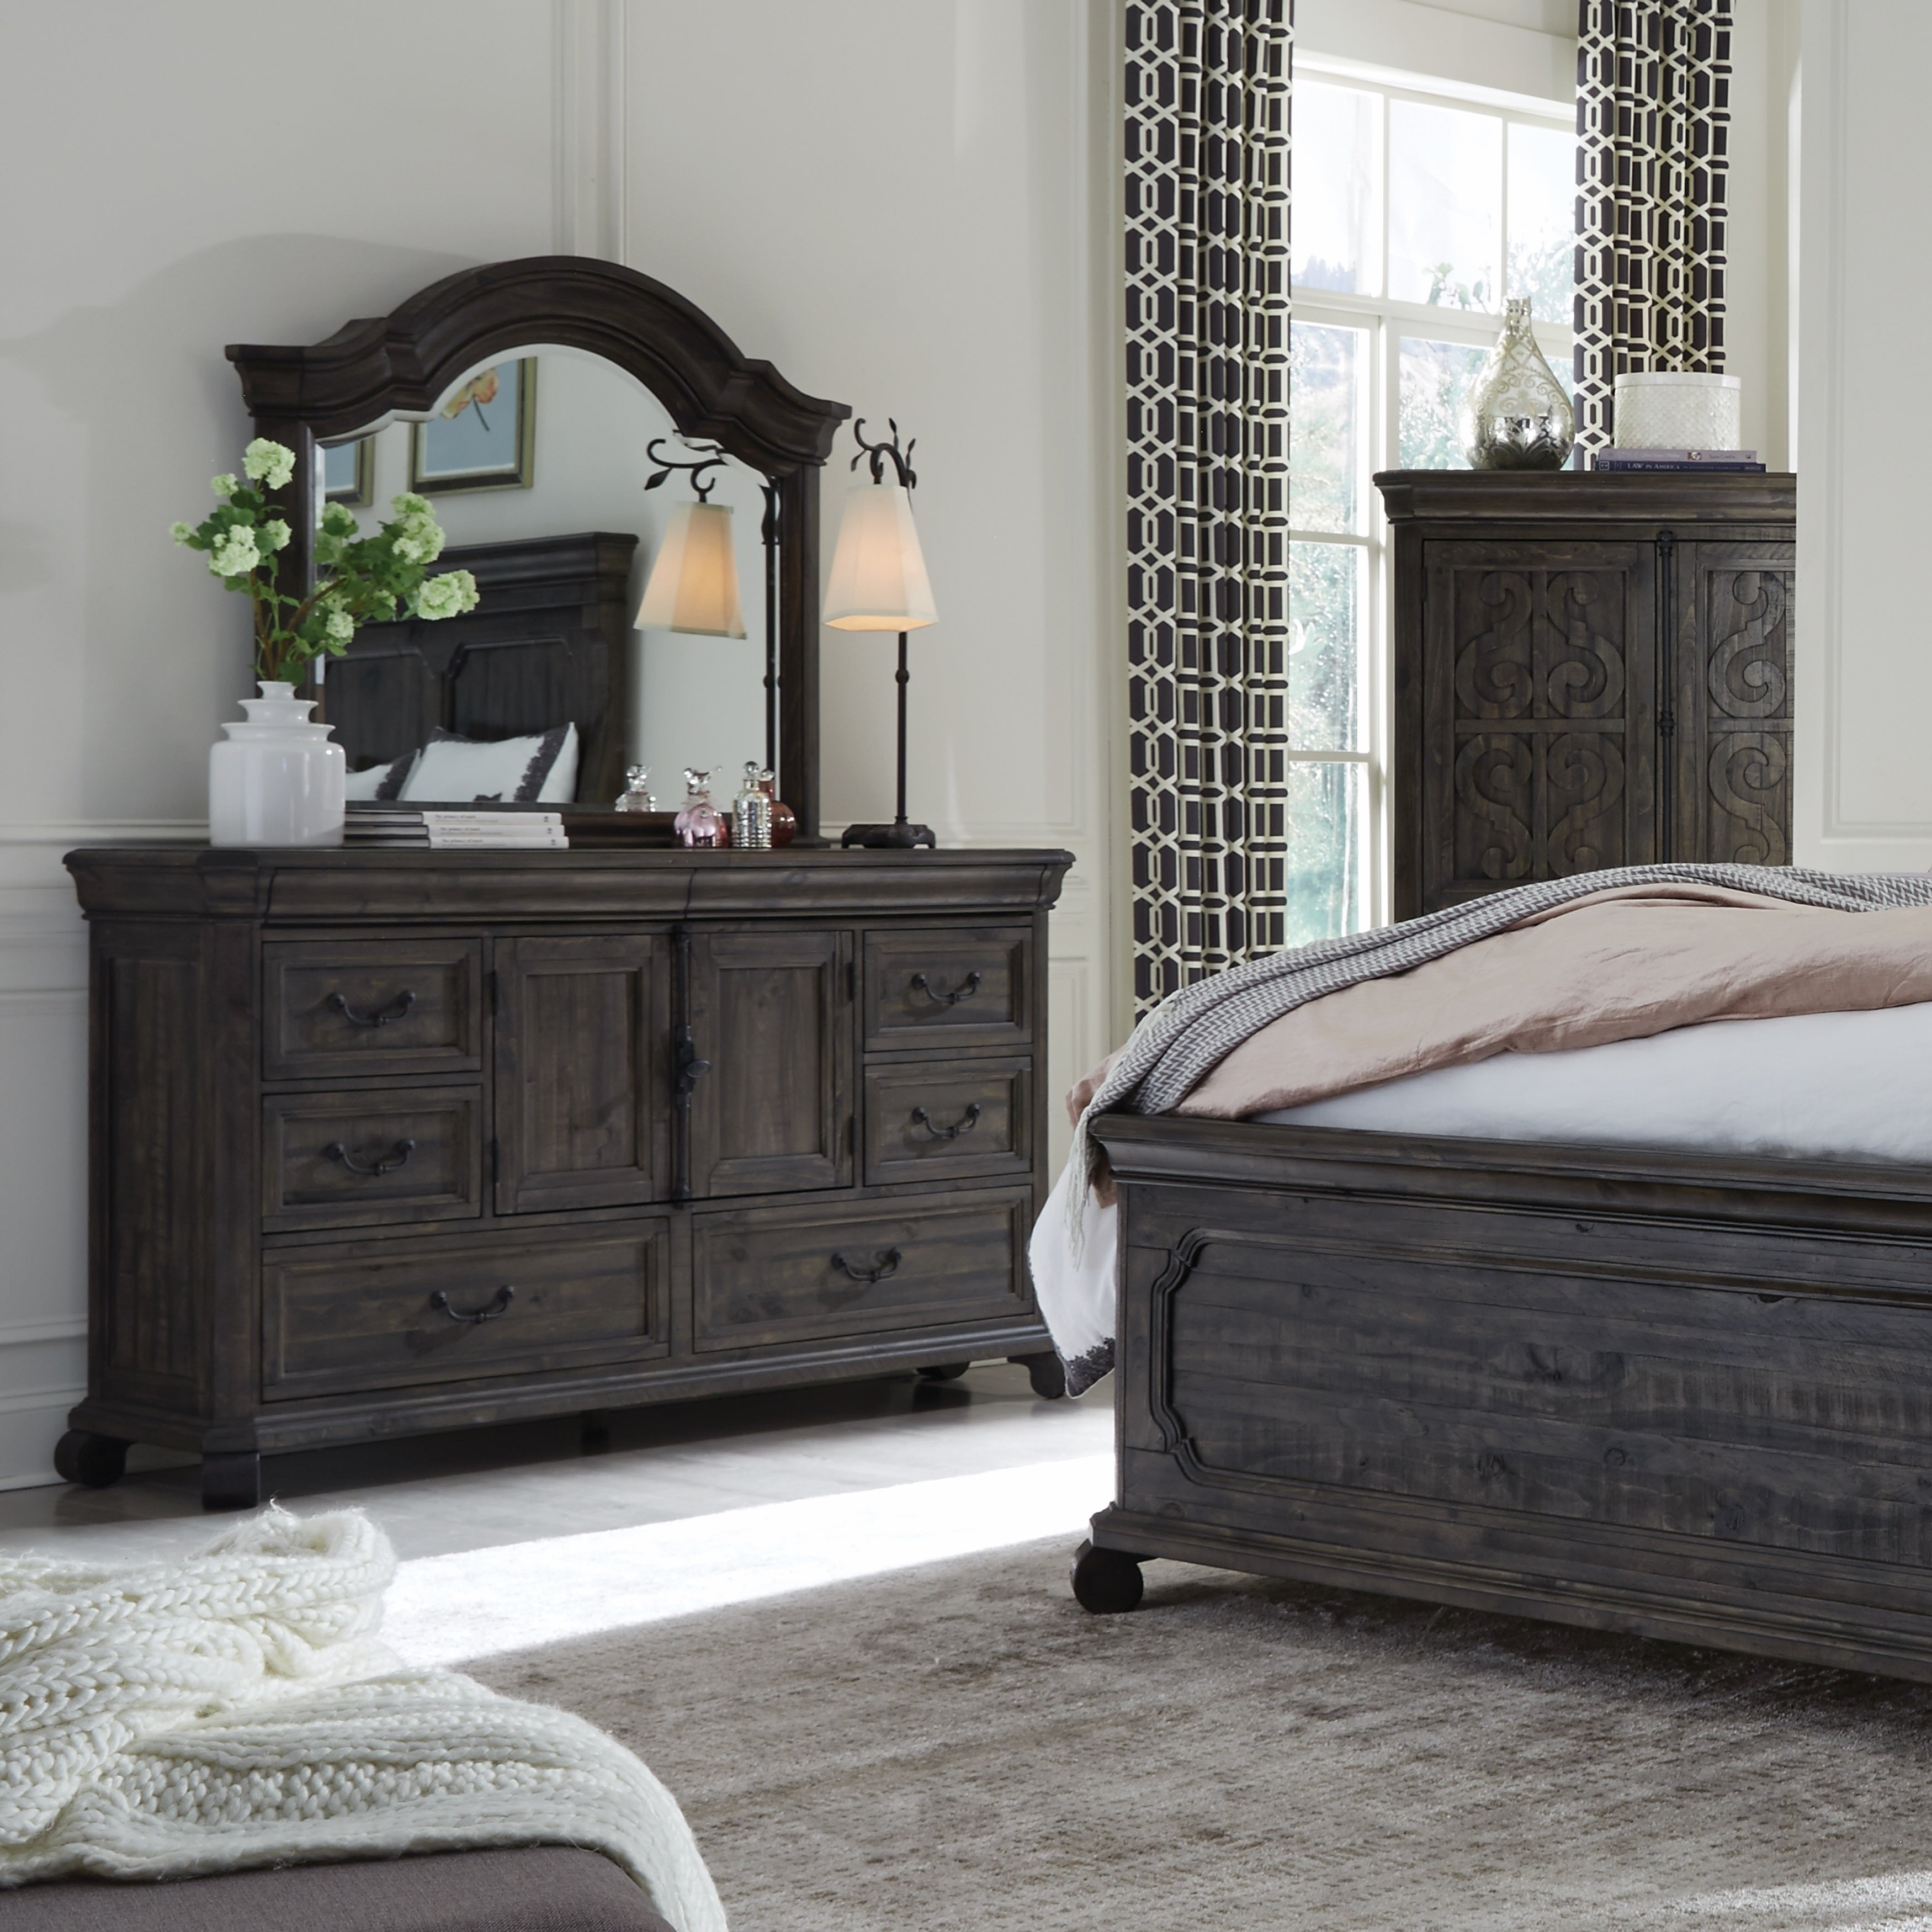 Shop bellamy traditional peppercorn 8 drawer dresser on sale free shipping today overstock com 20108333